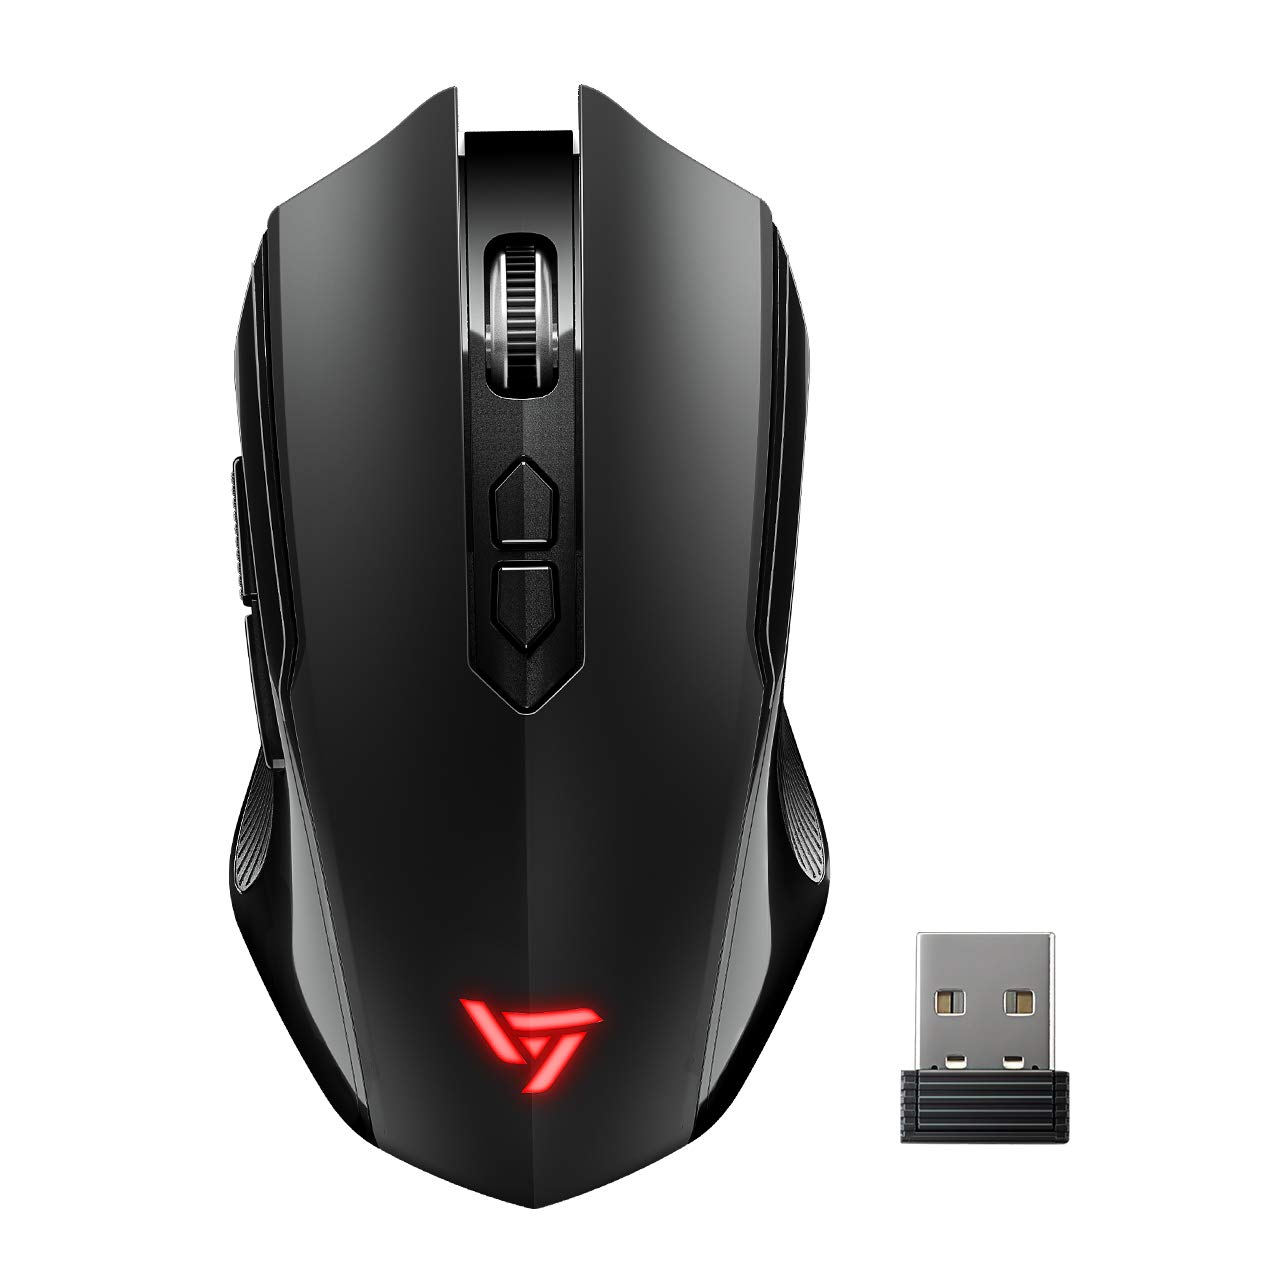 VicTsing Wireless Gaming Mouse Unique Silent Click, Portable Silent Mouse 2.4GHz Dropout-Free Connection PC Windows 7/8/10/XP Vista Linux, Black by VicTsing